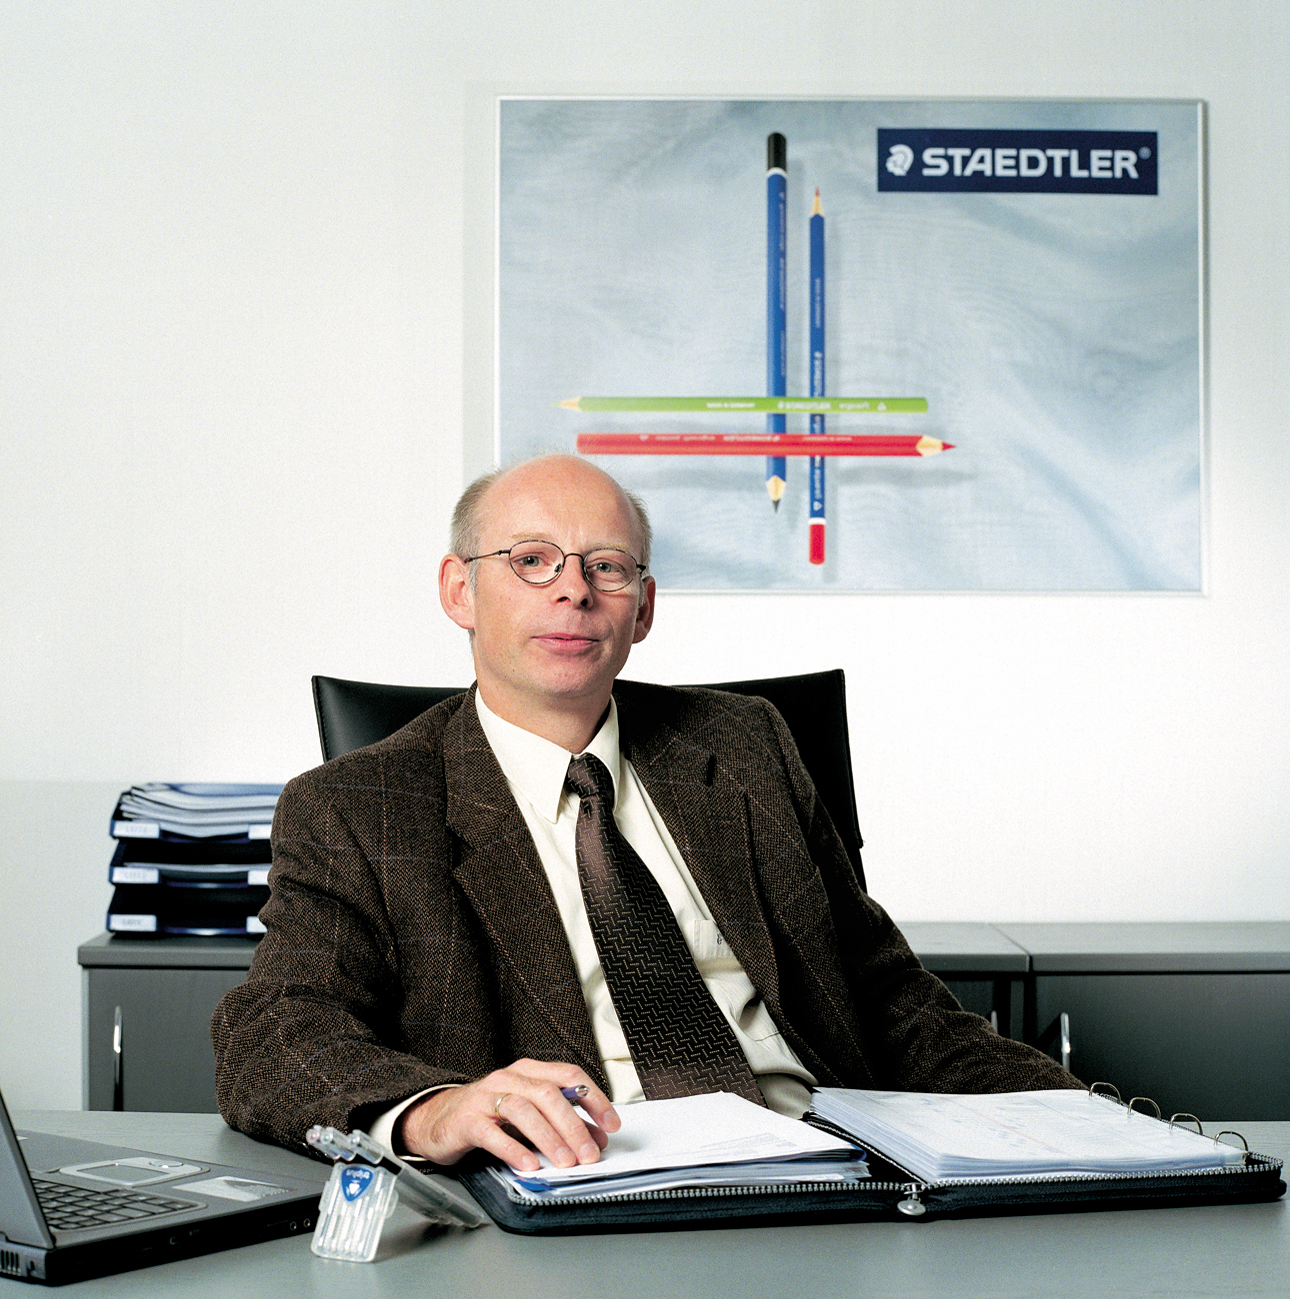 Axel Marx Staedtler Managing Director